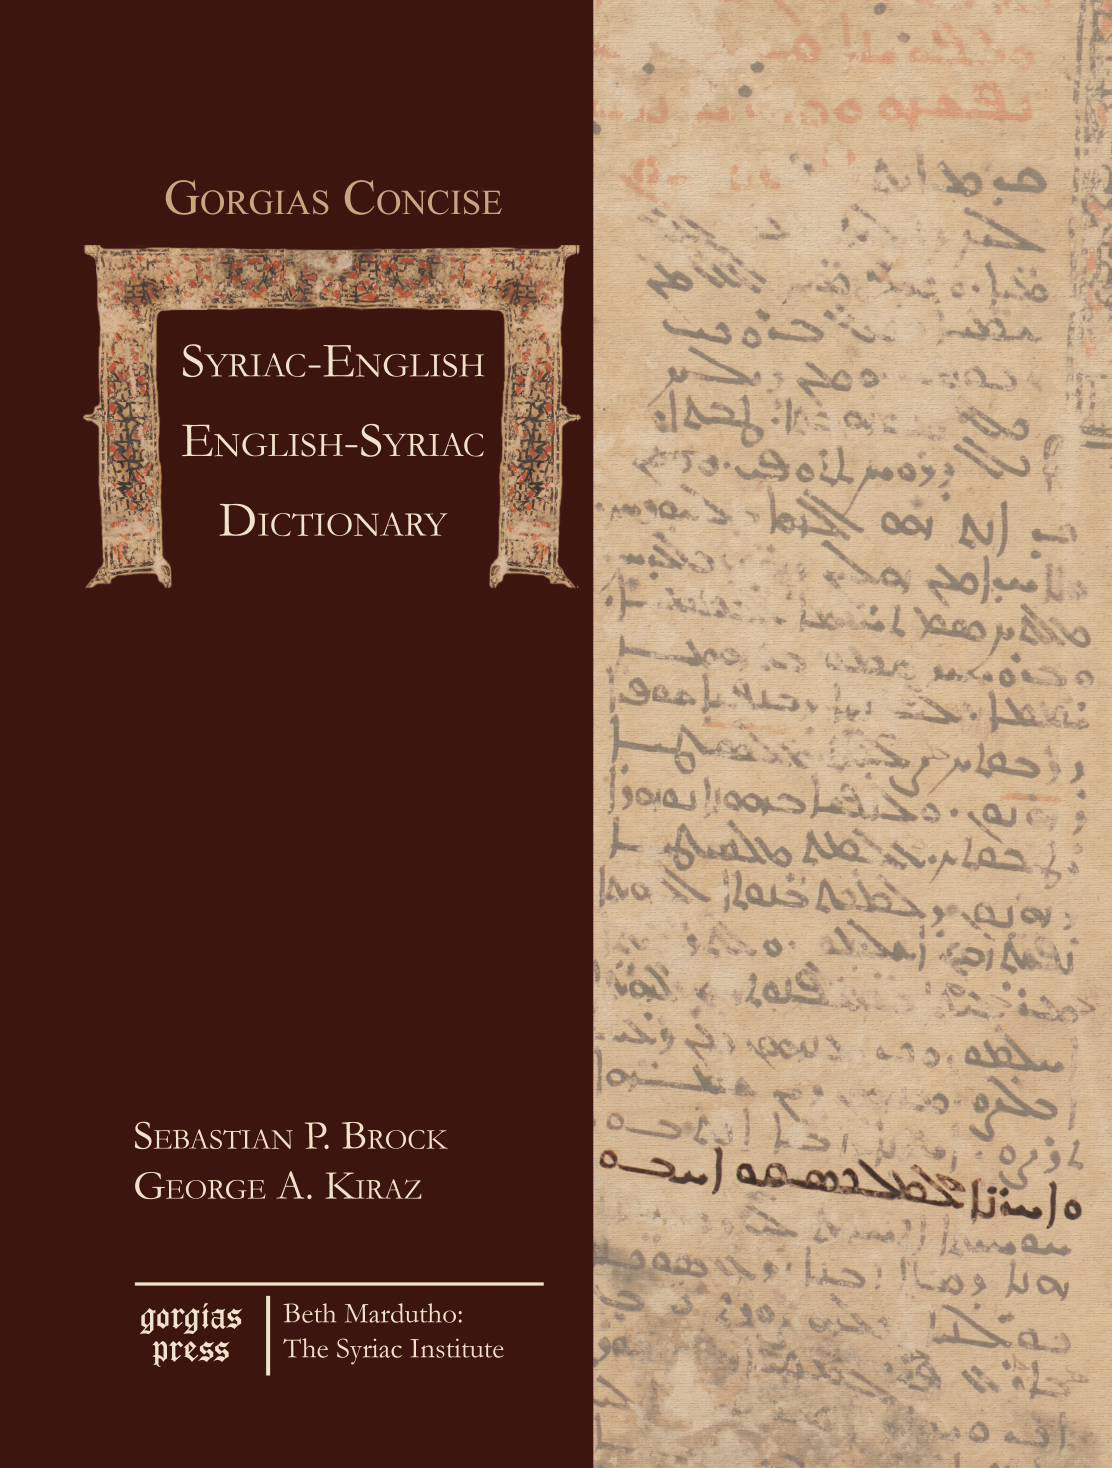 Image of Gorgias Concise Dictionary